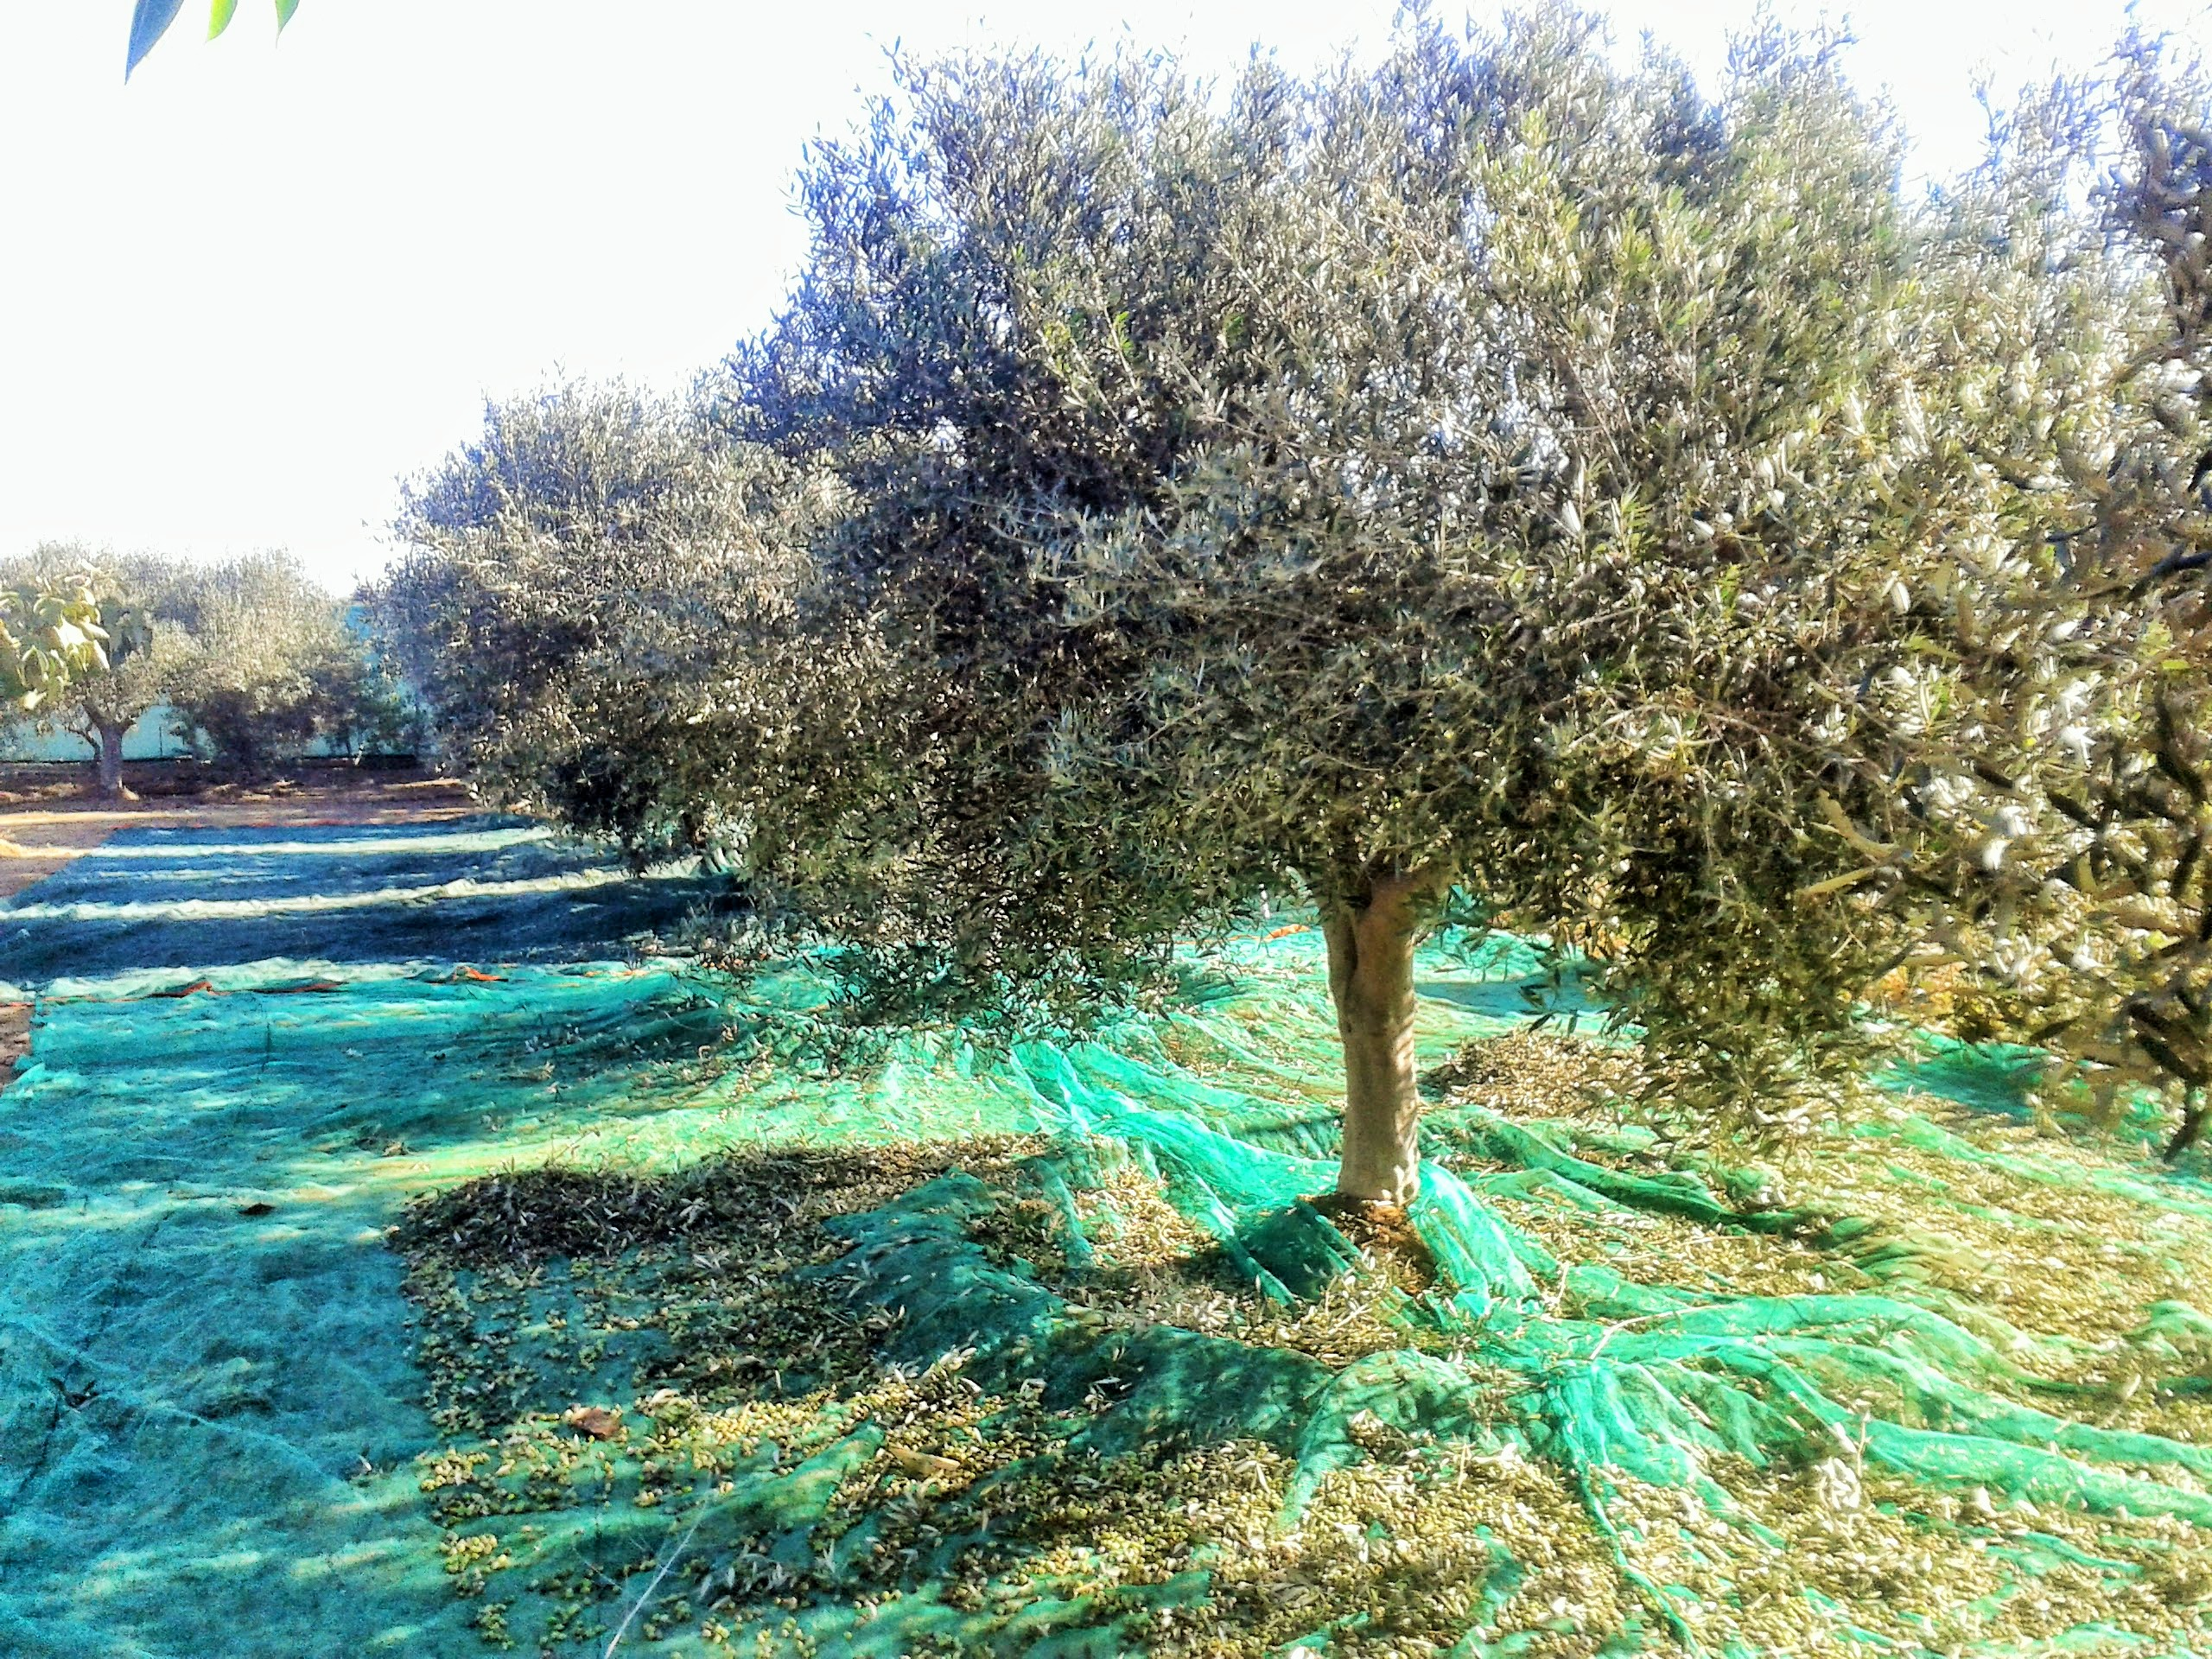 Giant nets ready to catch the olives